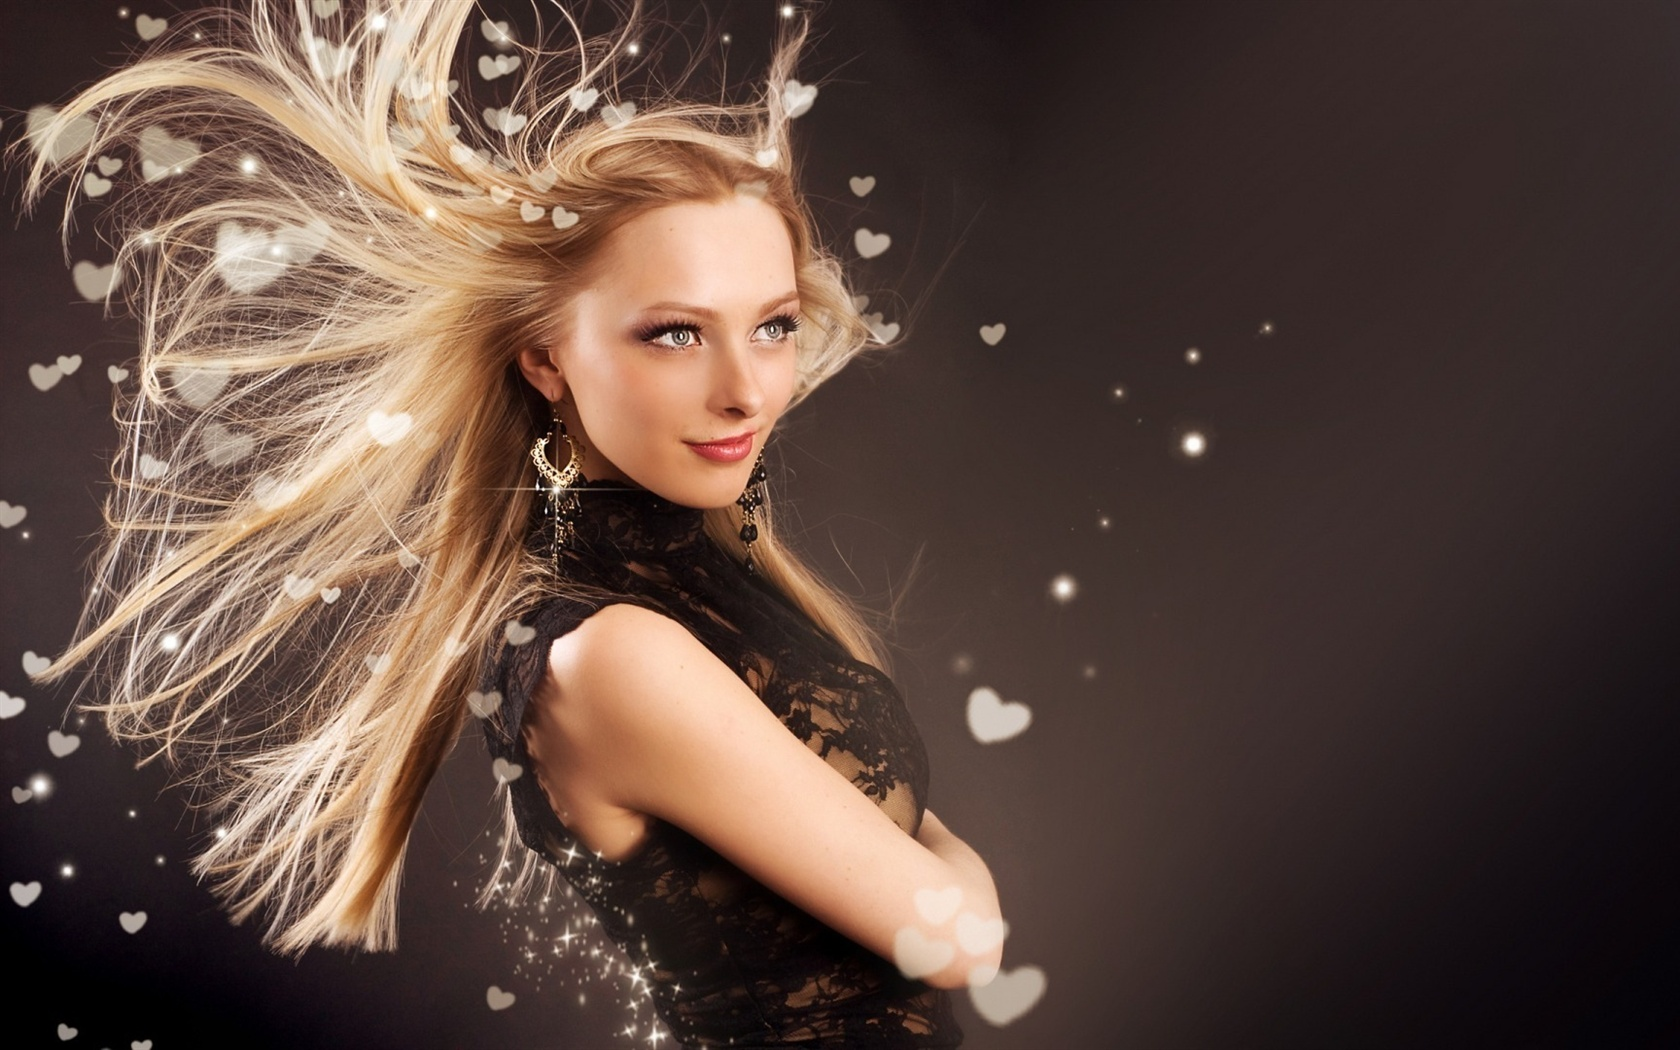 Wallpaper Fashion Girl Hair Flying 1920x1080 Full Hd 2k Picture Image